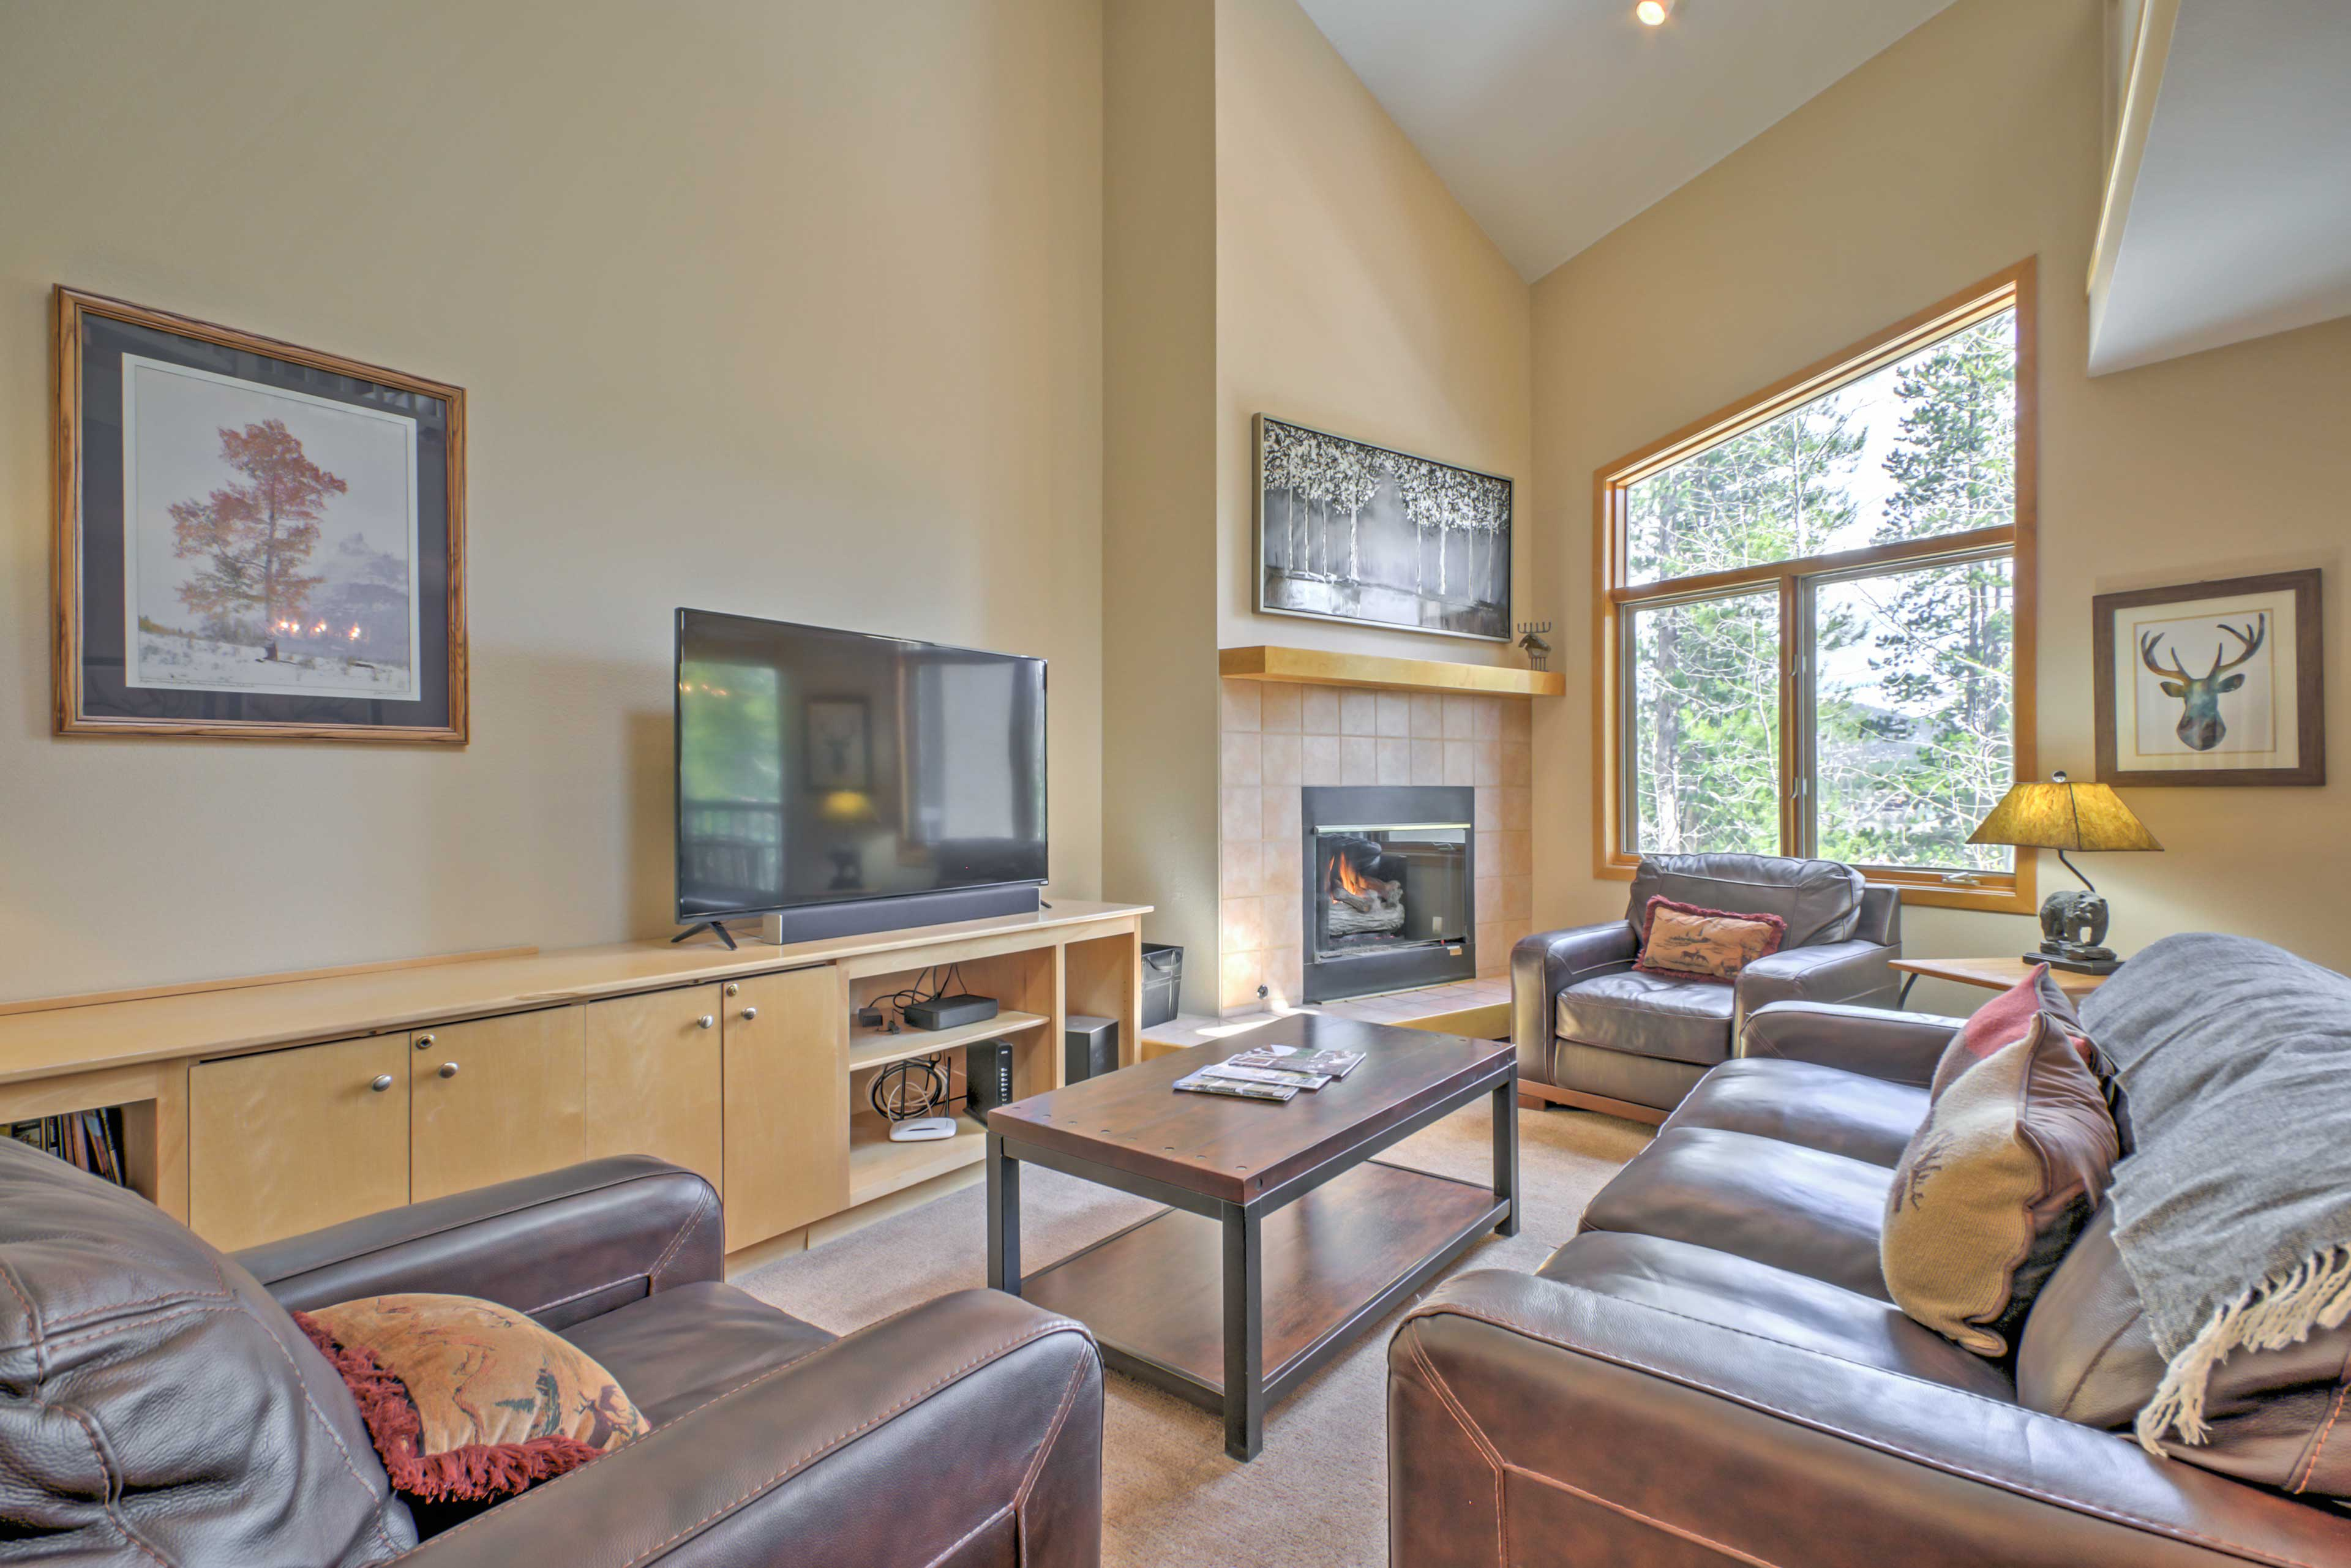 Unwind in front of the fireplace on the leather furnishings in the living room.